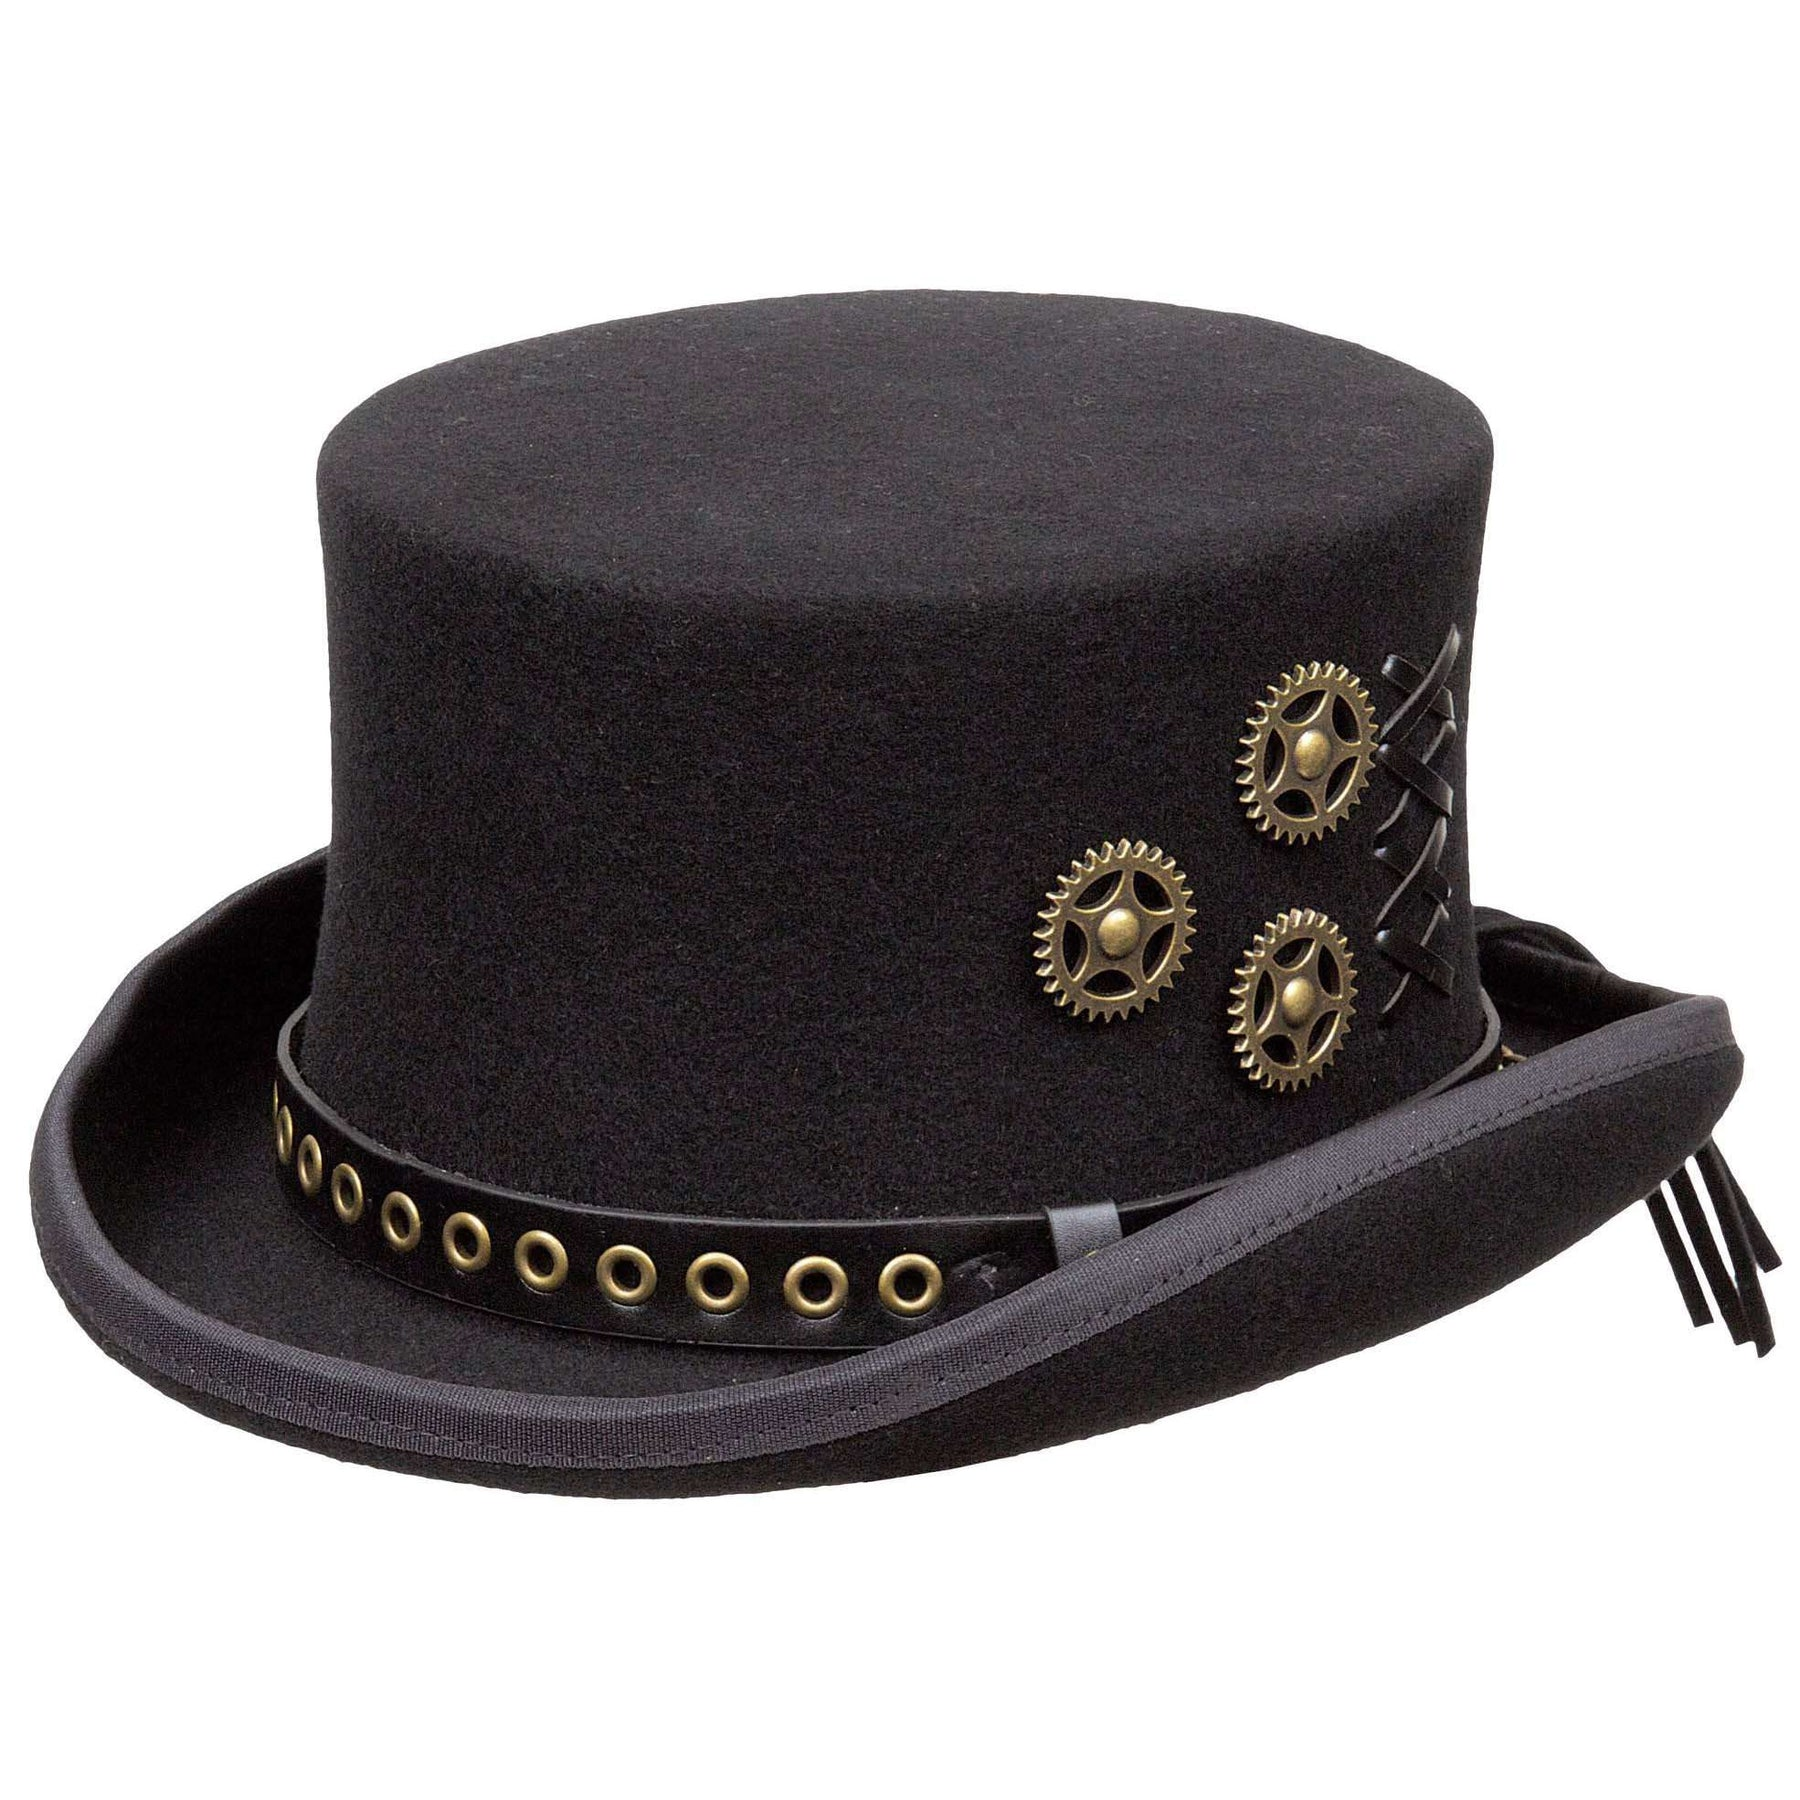 c04f25ca24d63 Hat Dictionary - Description of Historical Hat Styles — SetarTrading ...